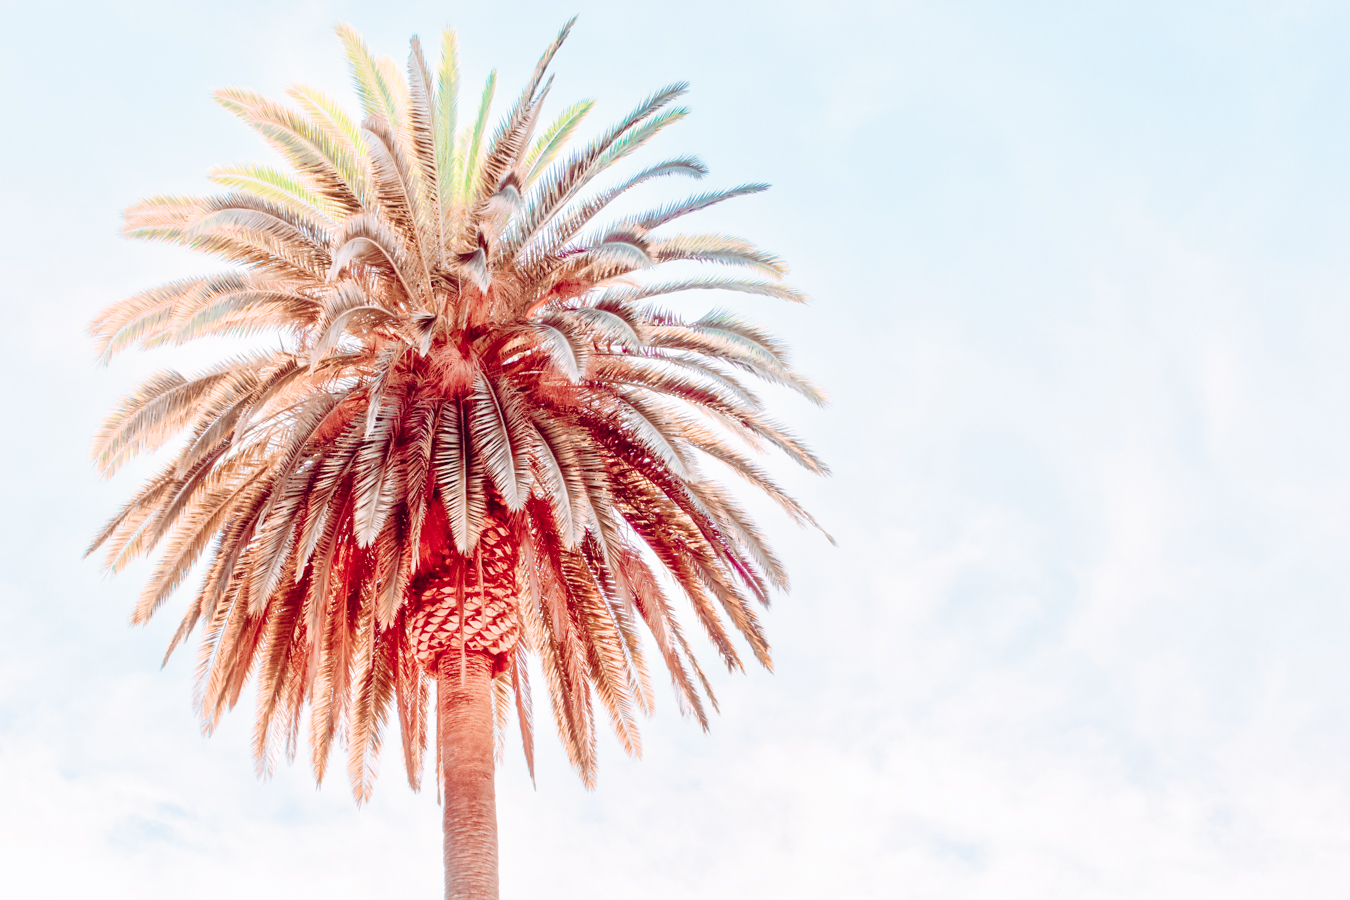 Large palm tree in San Diego